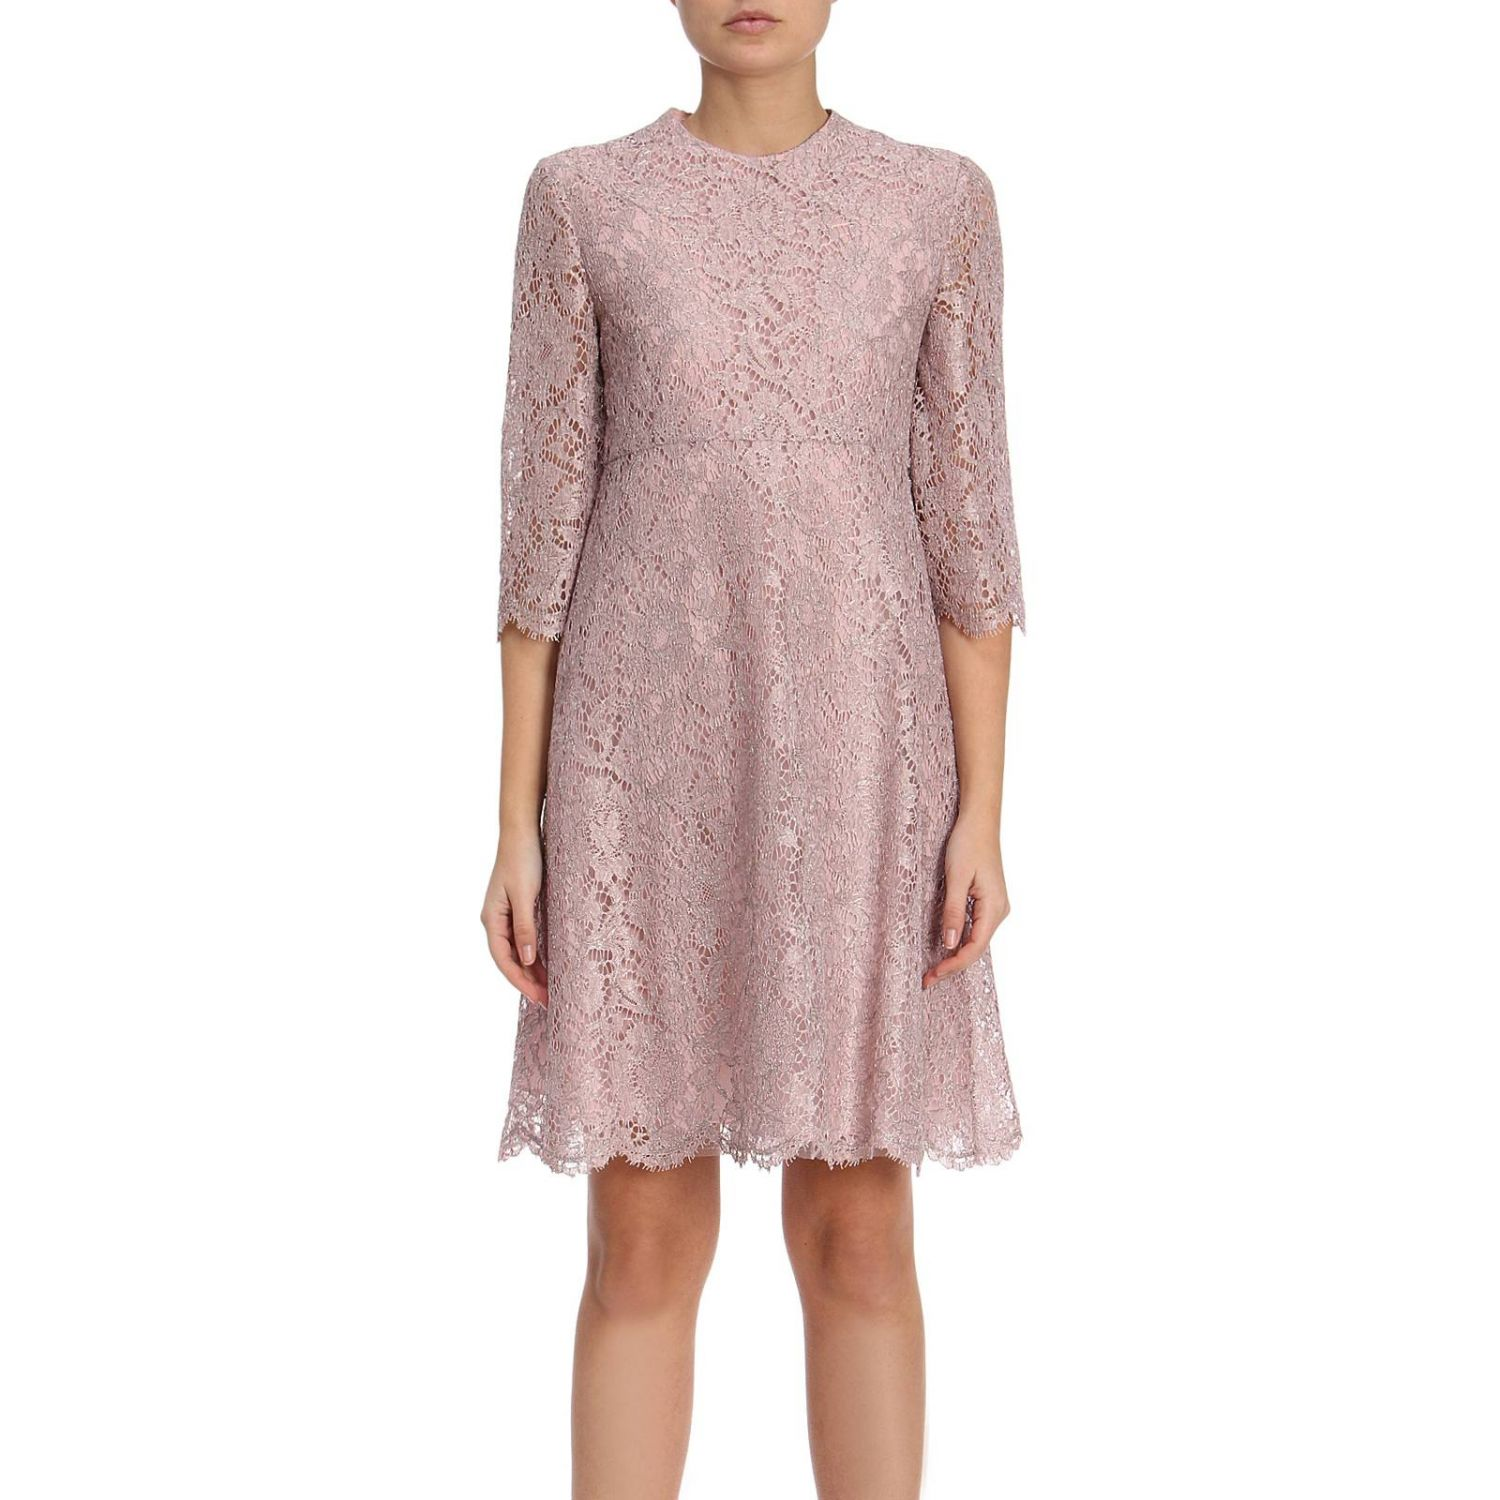 Dress Dress Women Valentino 8287144